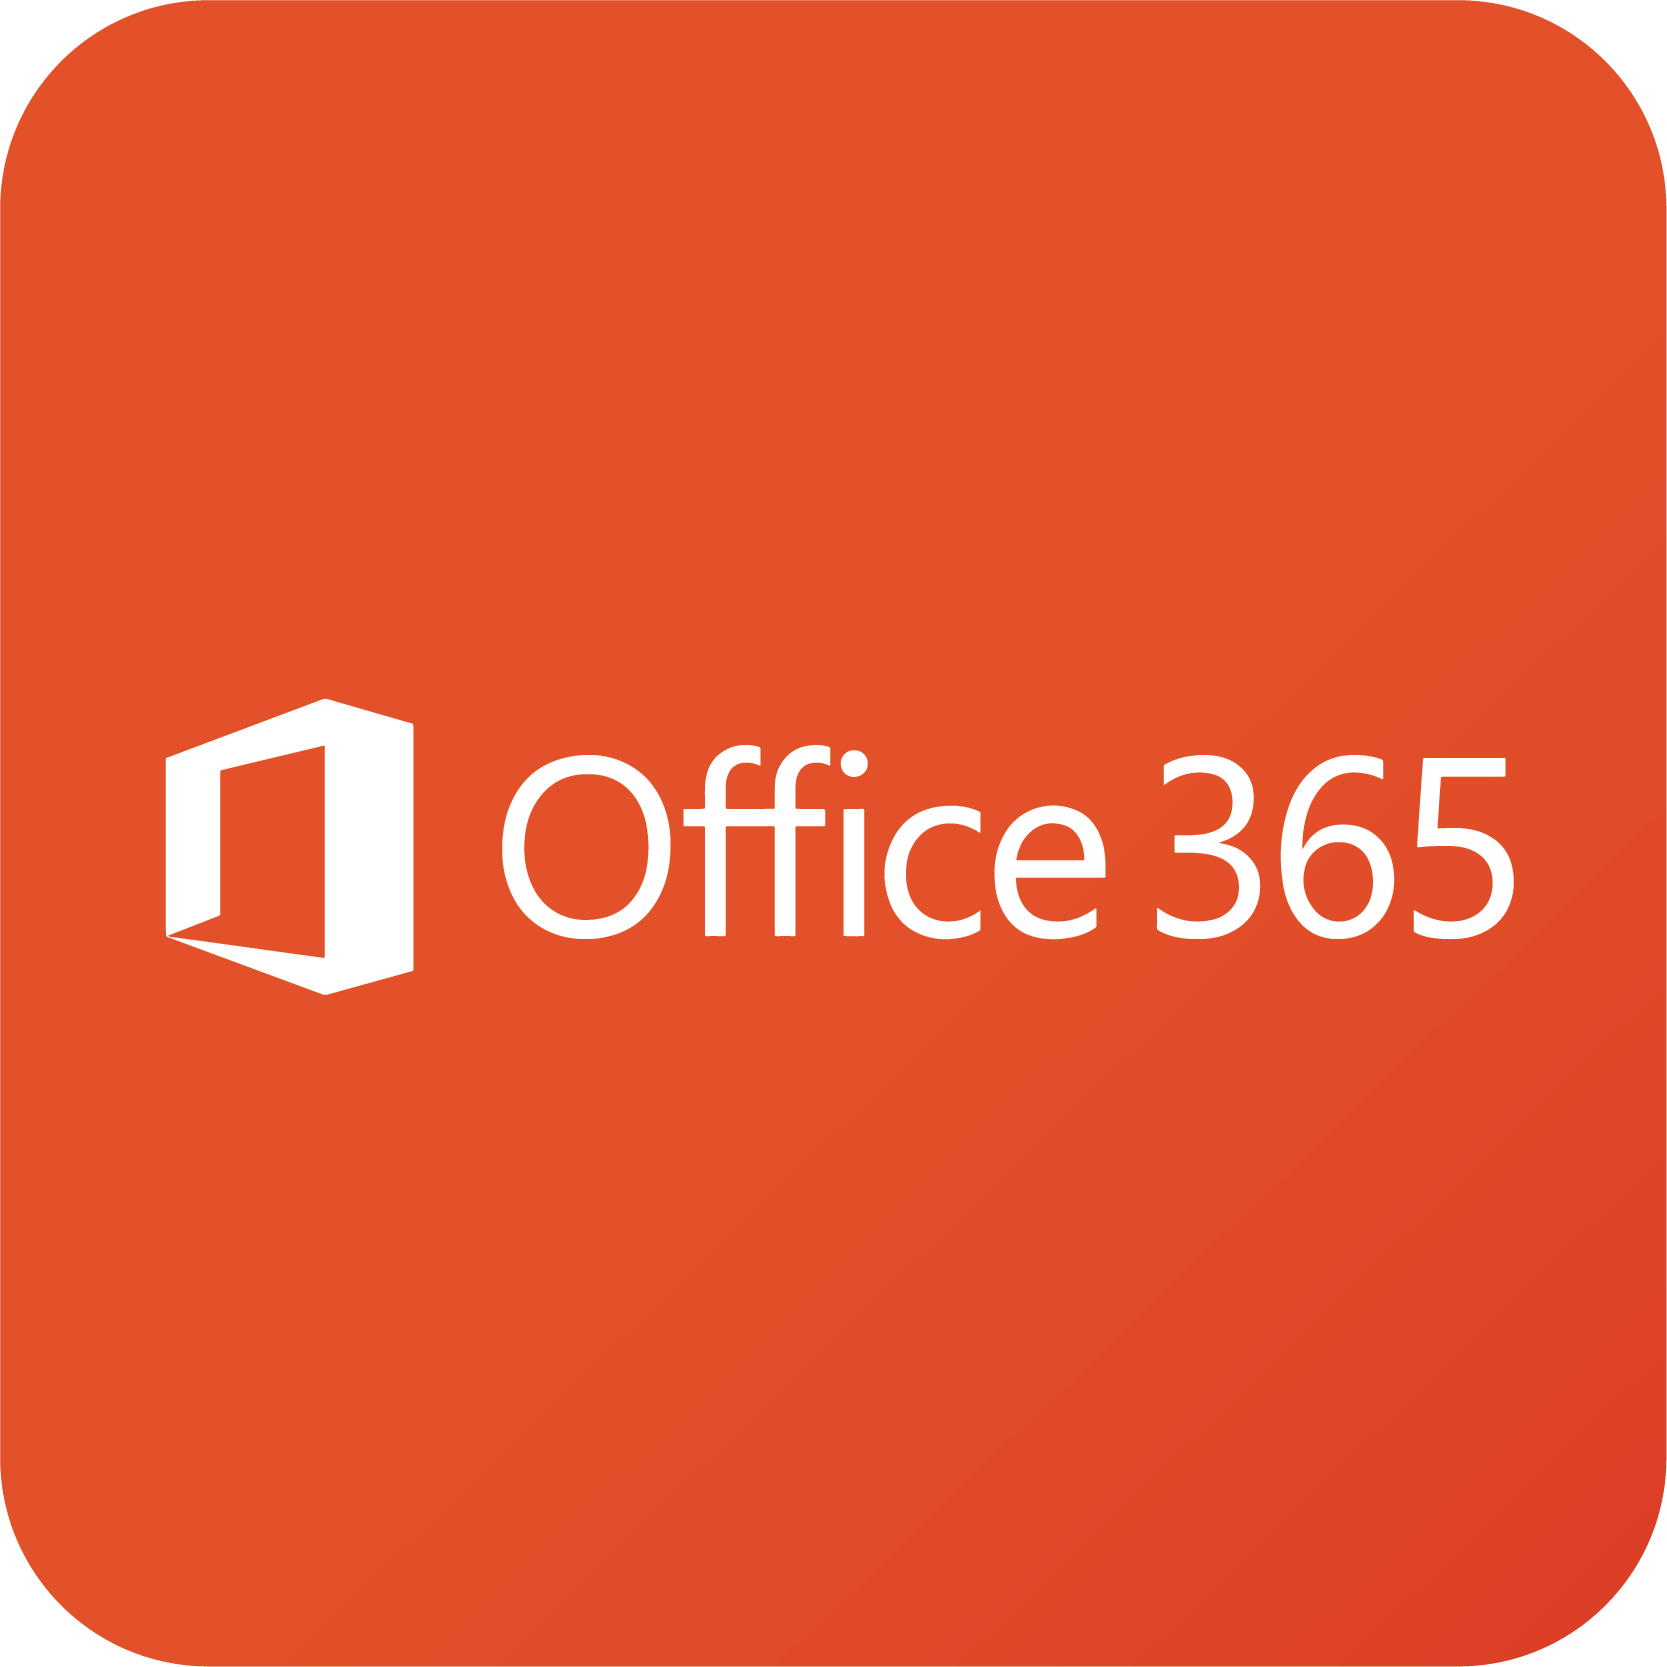 Office 365_icon-01